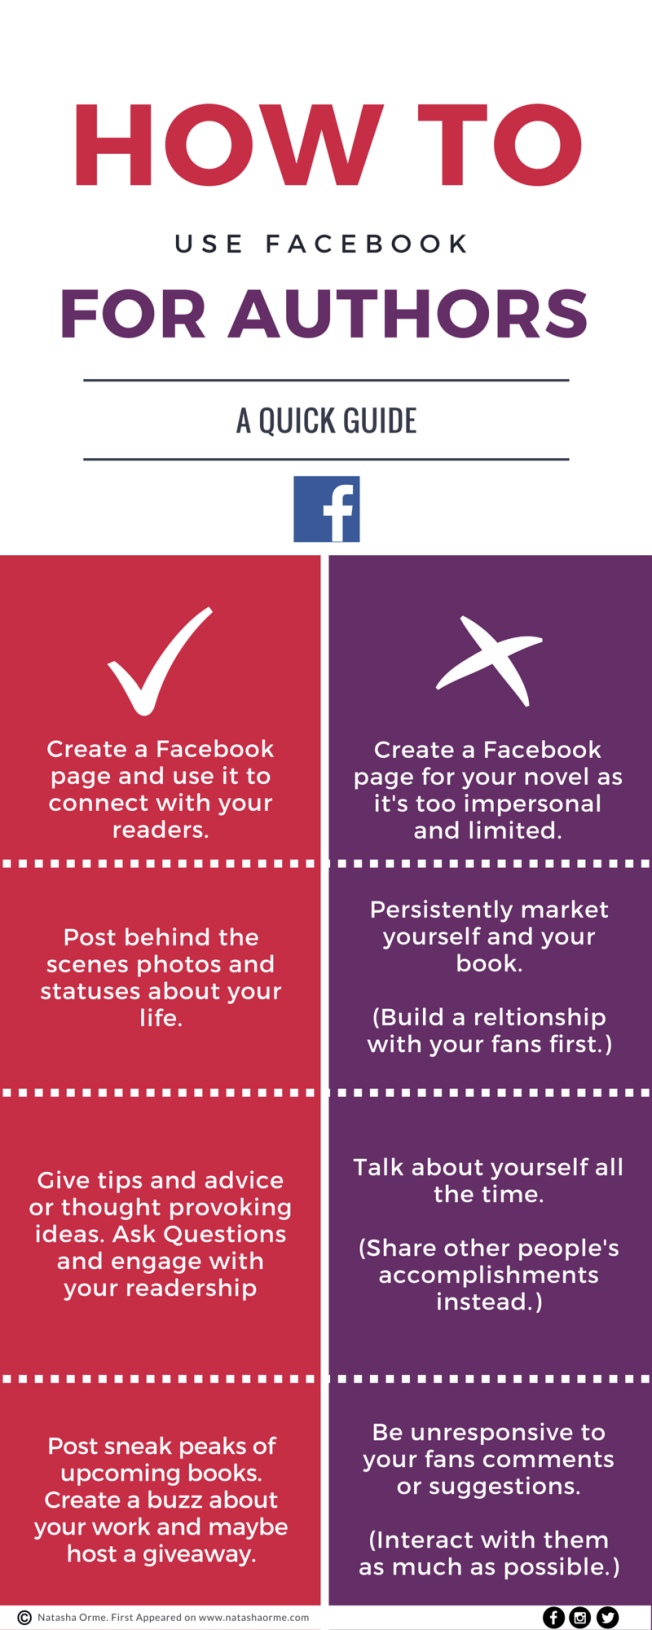 How-to-Use-Facebook-for-Authors